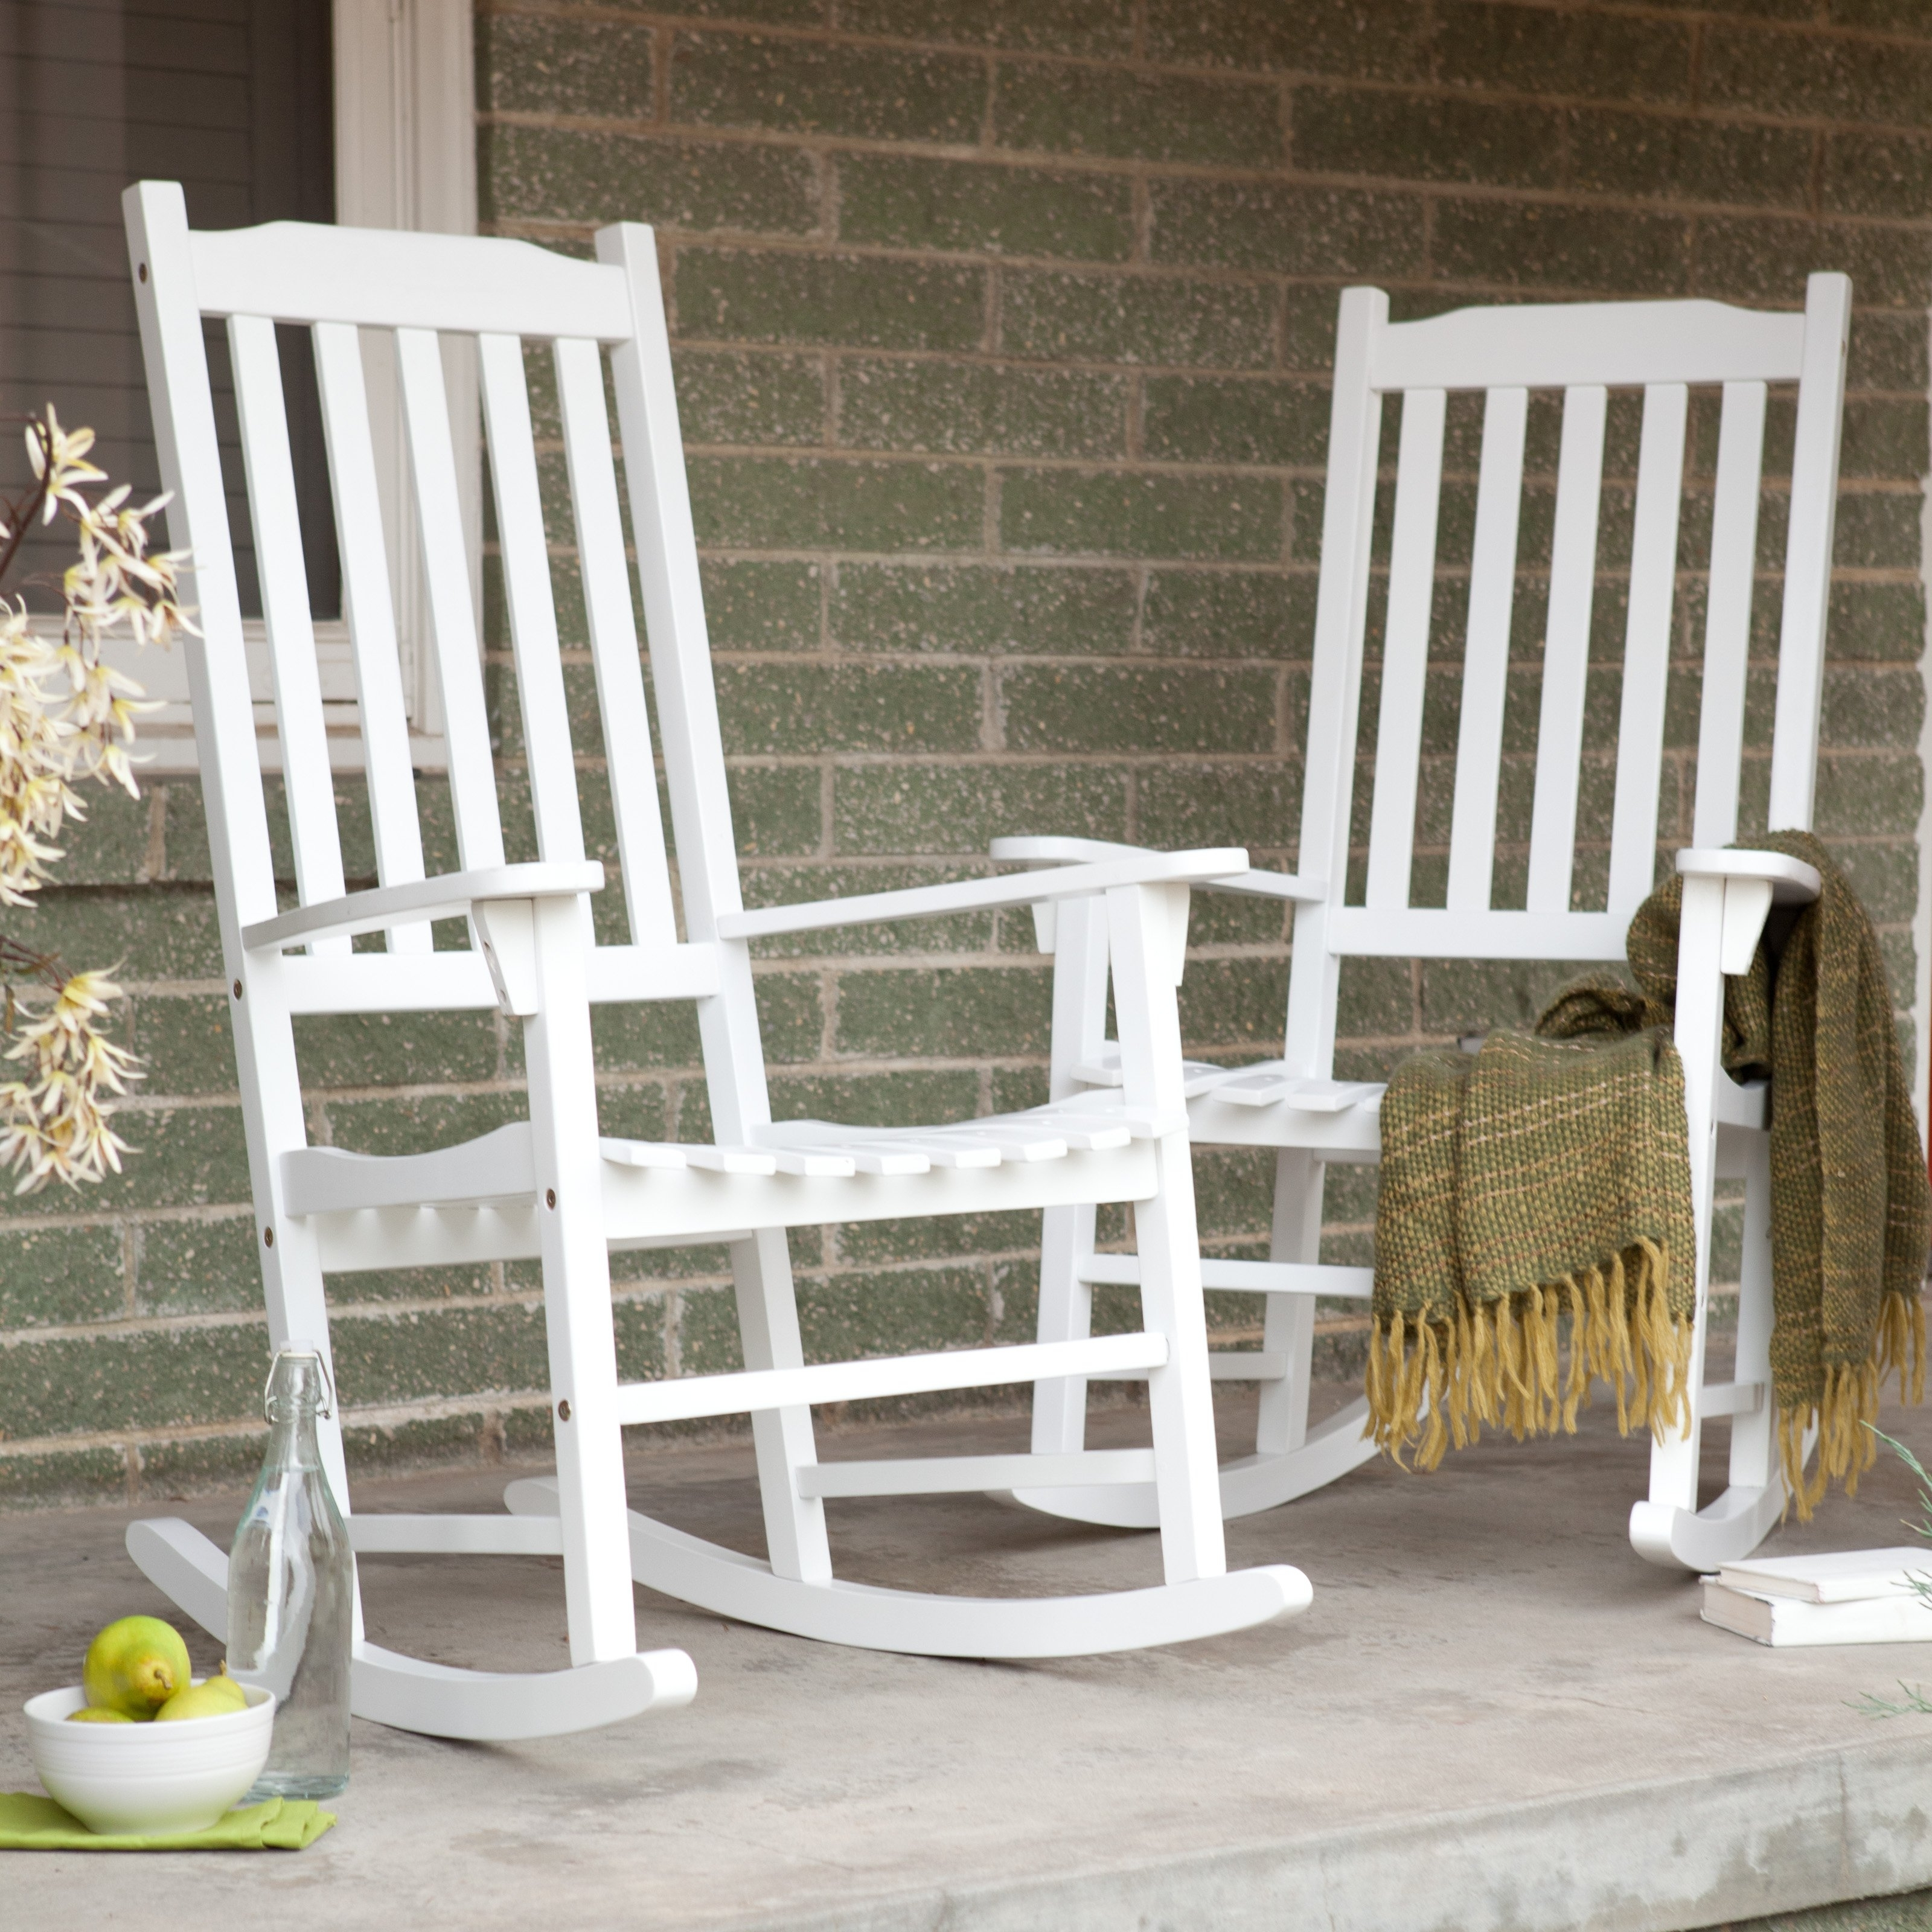 Latest Coral Coast Indoor/outdoor Mission Slat Rocking Chairs – White – Set Regarding Outside Rocking Chair Sets (View 4 of 15)